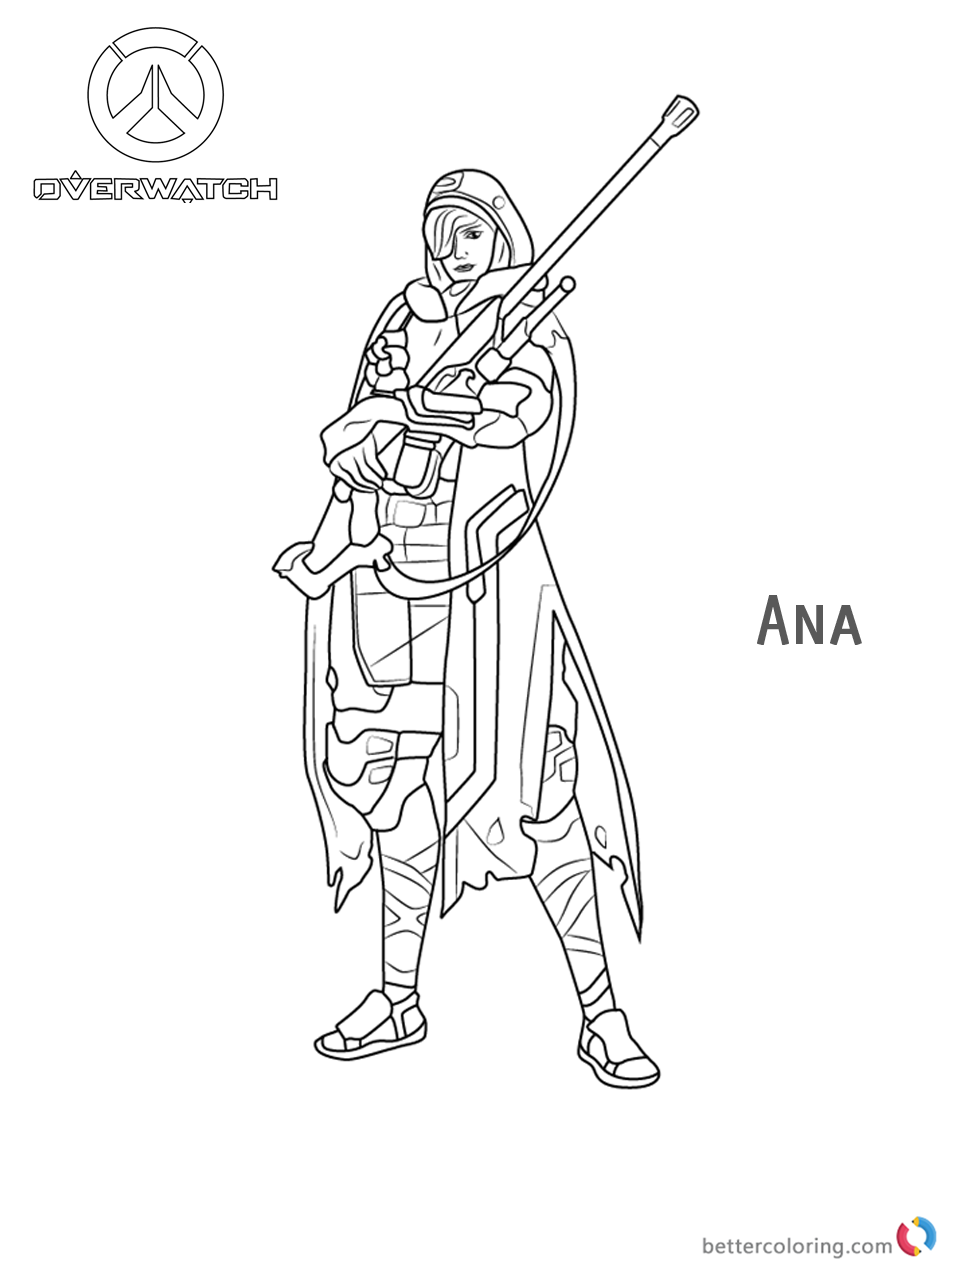 Ana From Overwatch Coloring Pages Free Printable